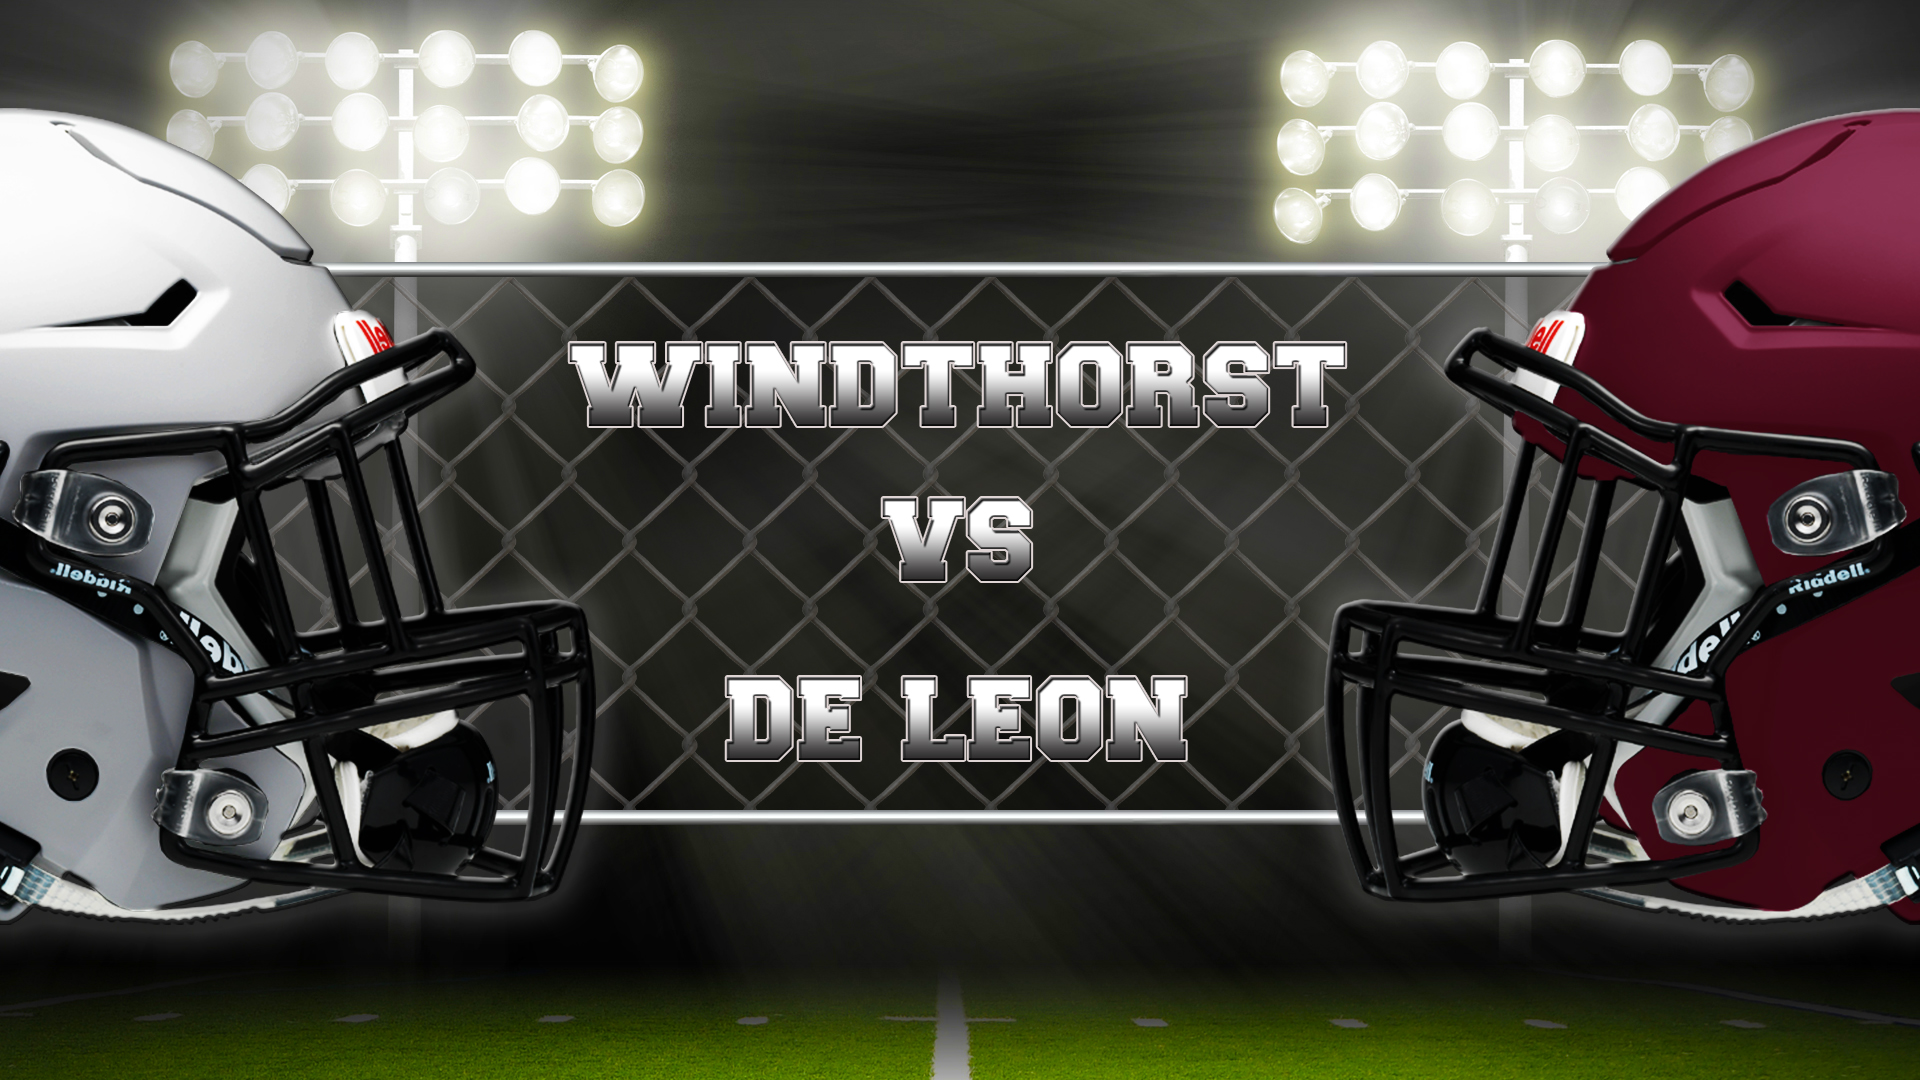 Windthorst vs De Leon_1479936828827.jpg